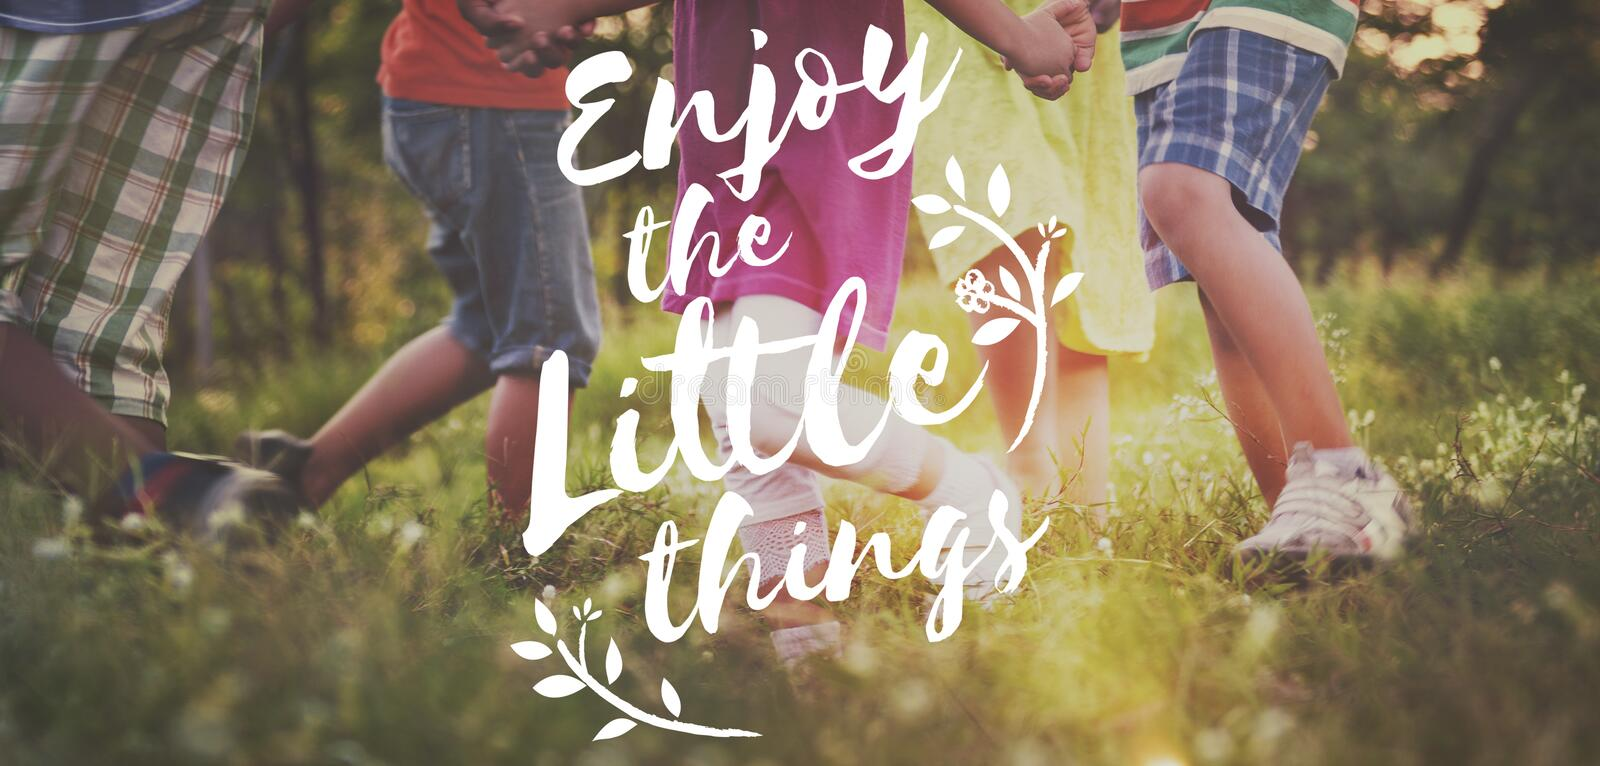 Enjoy Happiness Lifestyle Freedom Fun Concept royalty free stock image